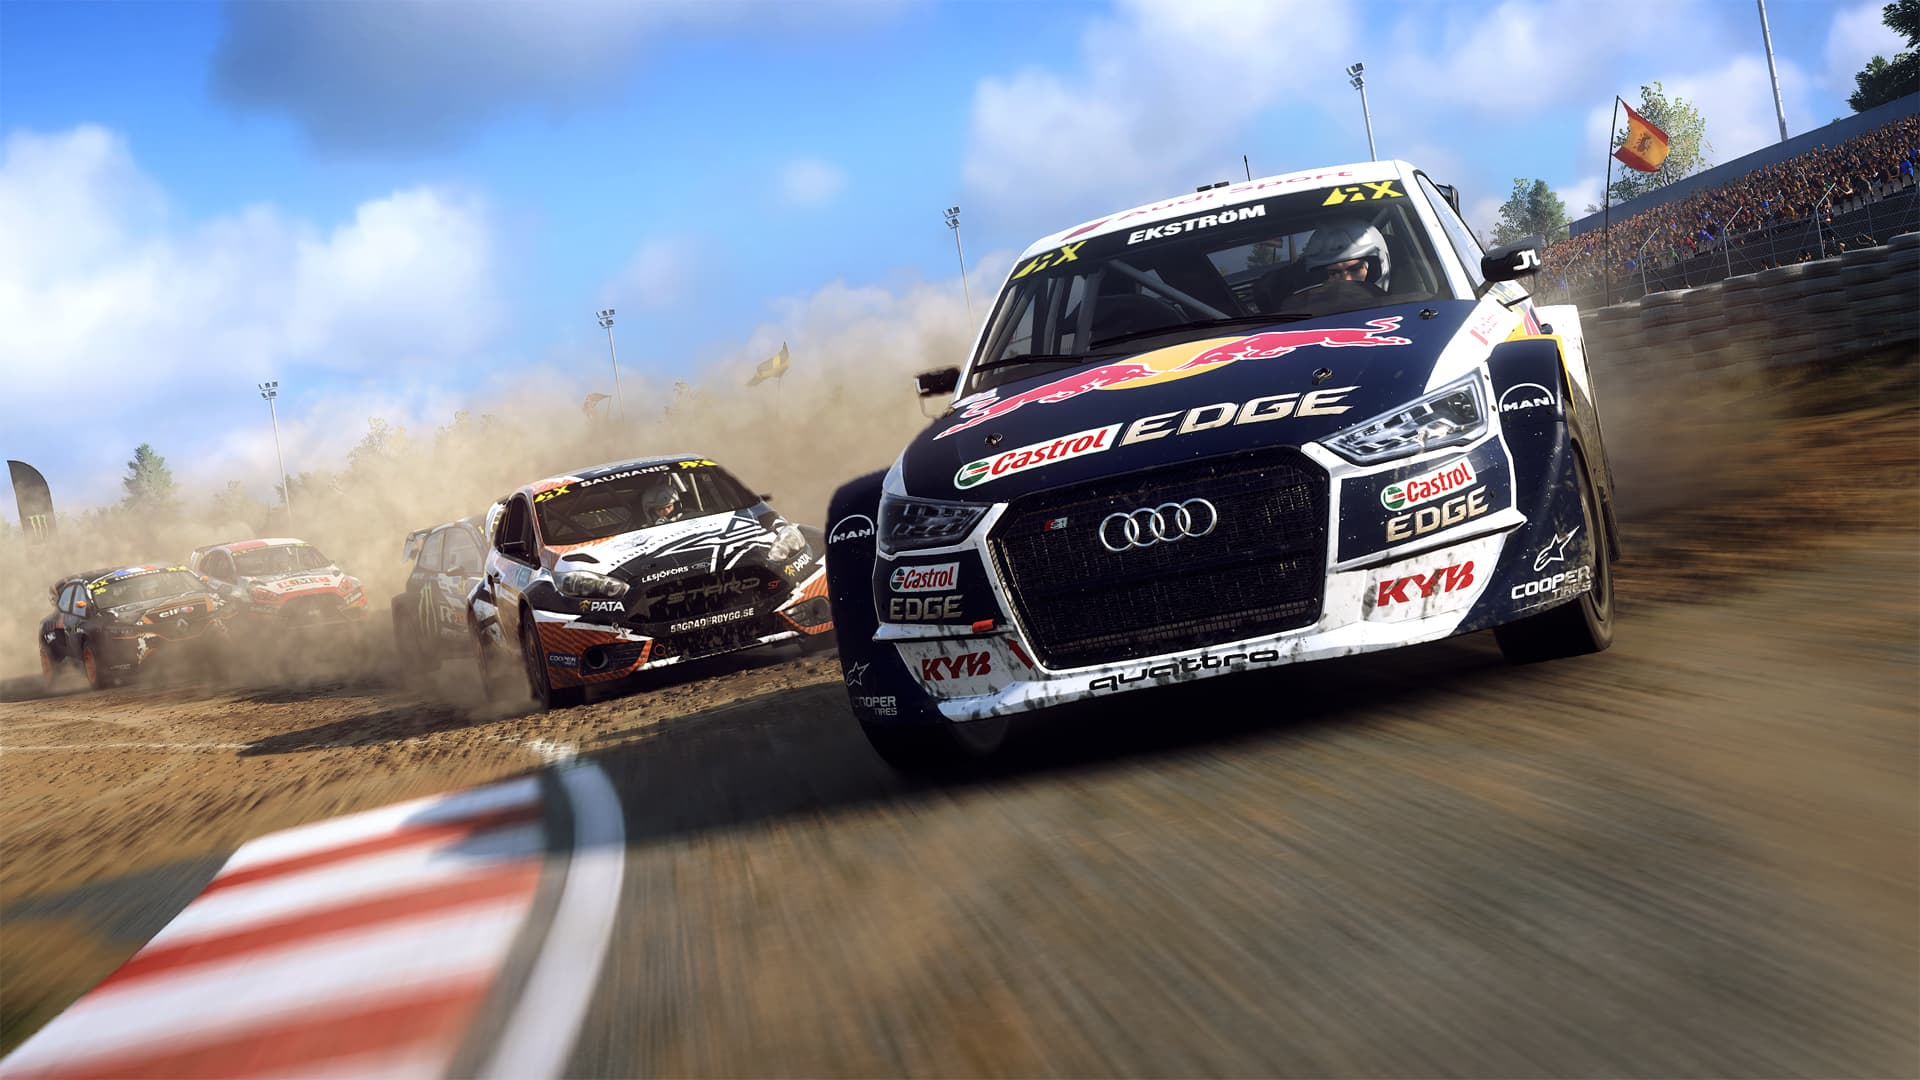 Análisis de DiRT Rally 2.0 - Xbox One 1